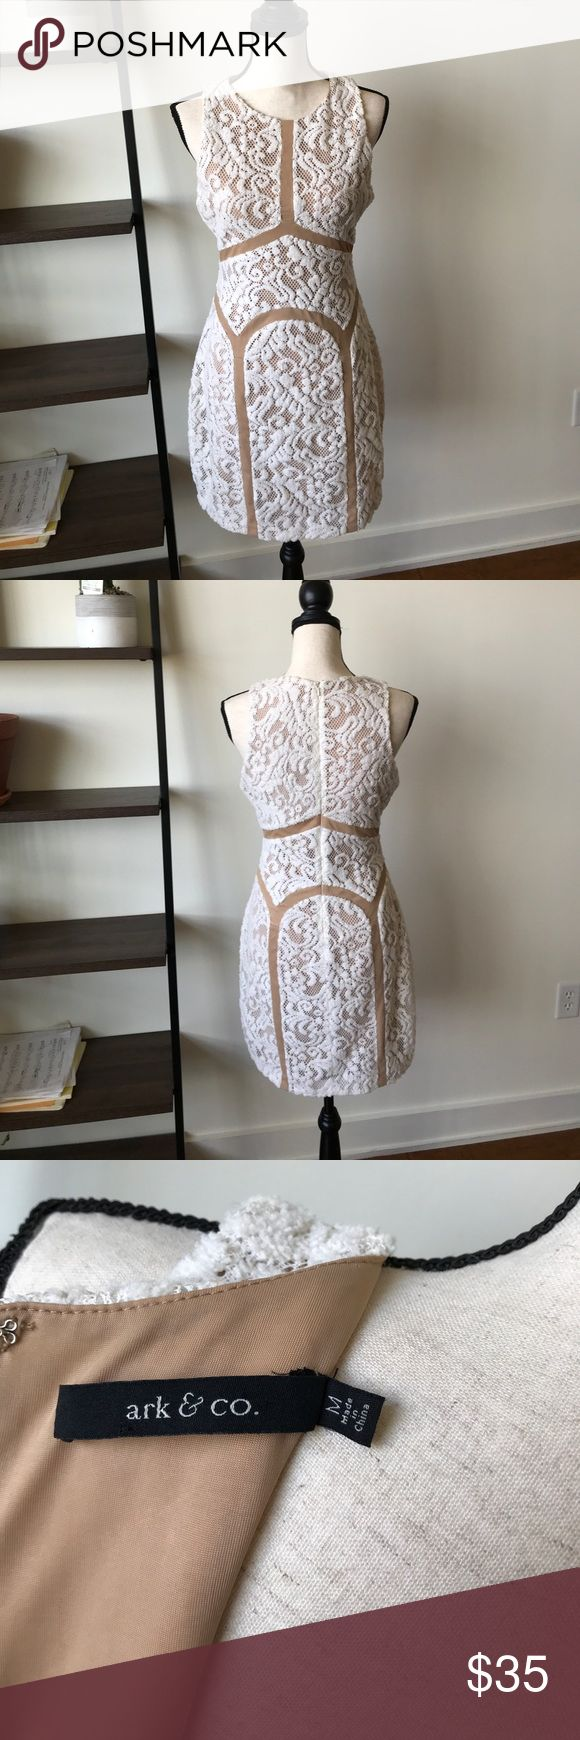 "White and tan lace dress Great condition lace dress. Worn once. Super stretchy and comfortable on. Long zipper in the back. Length 35"", waist 15"", armpit to armpit 18"" Super cute ""fuzzy"" lace fabric. Ark & Co Dresses Mini"